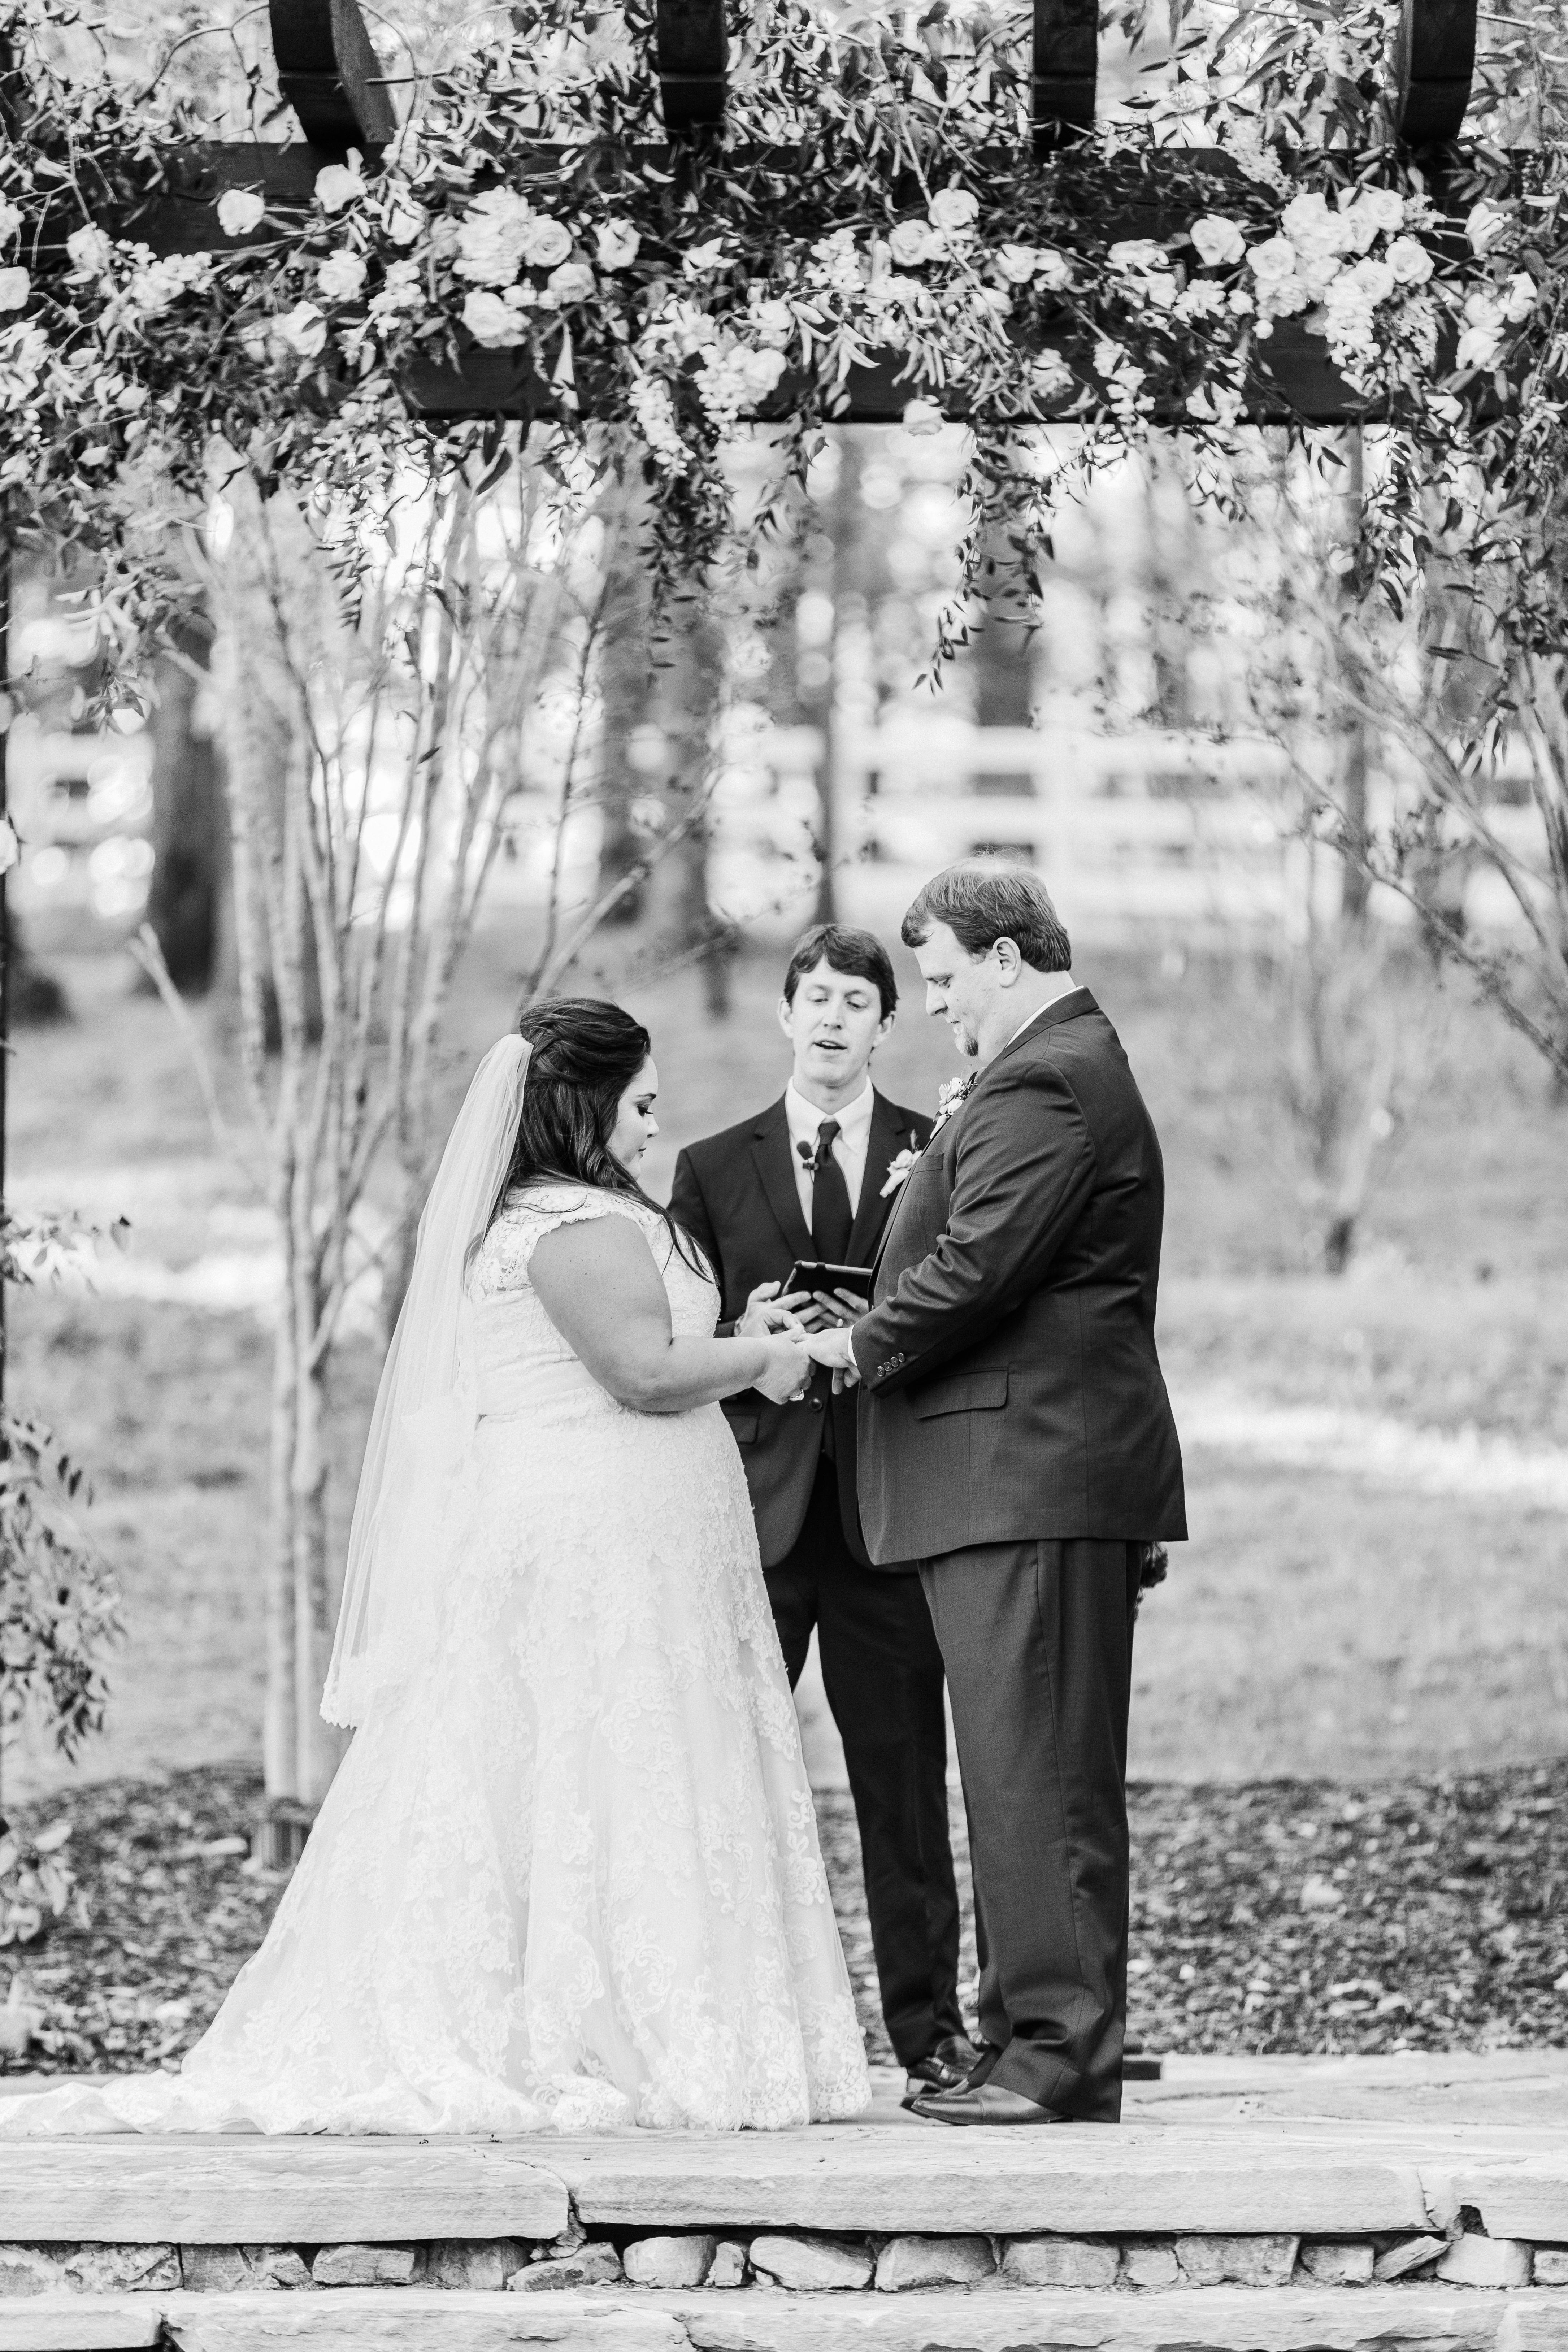 CAHOON_WEDDING_BIRMINGHAM_ALABAMA_WEDDING_PHOTOGRAPHY_99